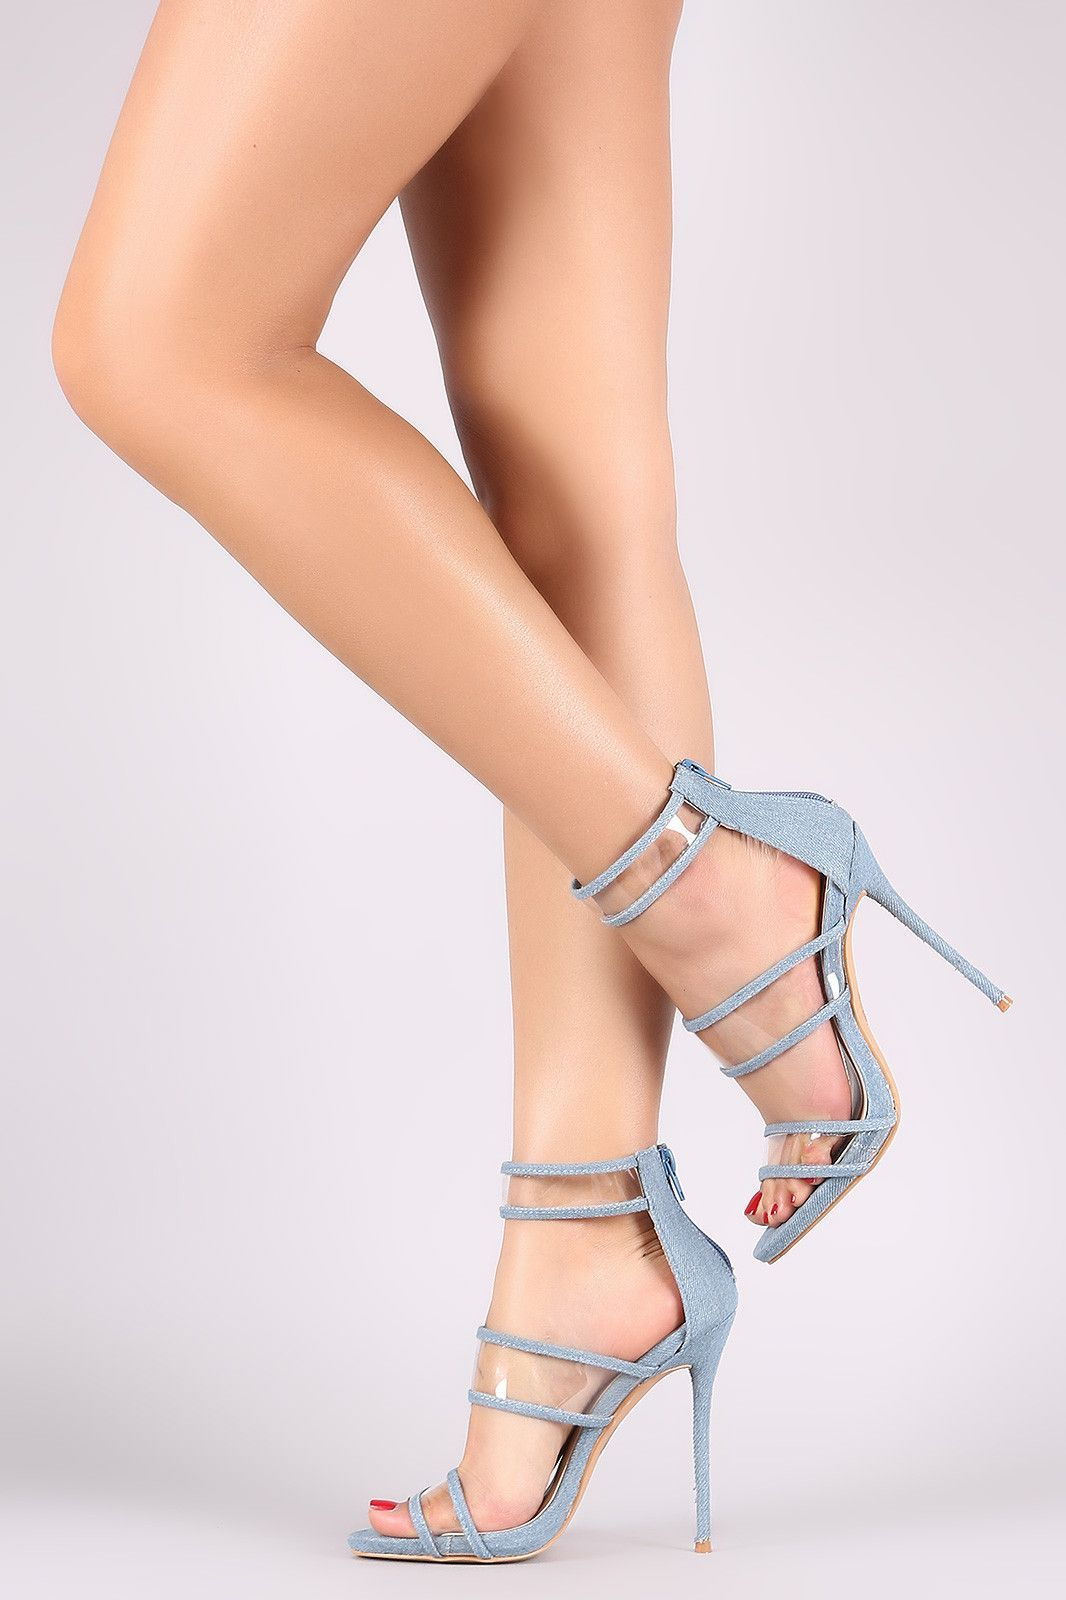 This gorgeous heel features an open toe silhouette, triple clear straps with denim trim, and slim stiletto heel. Finished with a lightly padded insole and rear zipper closure for easy on/off. Material